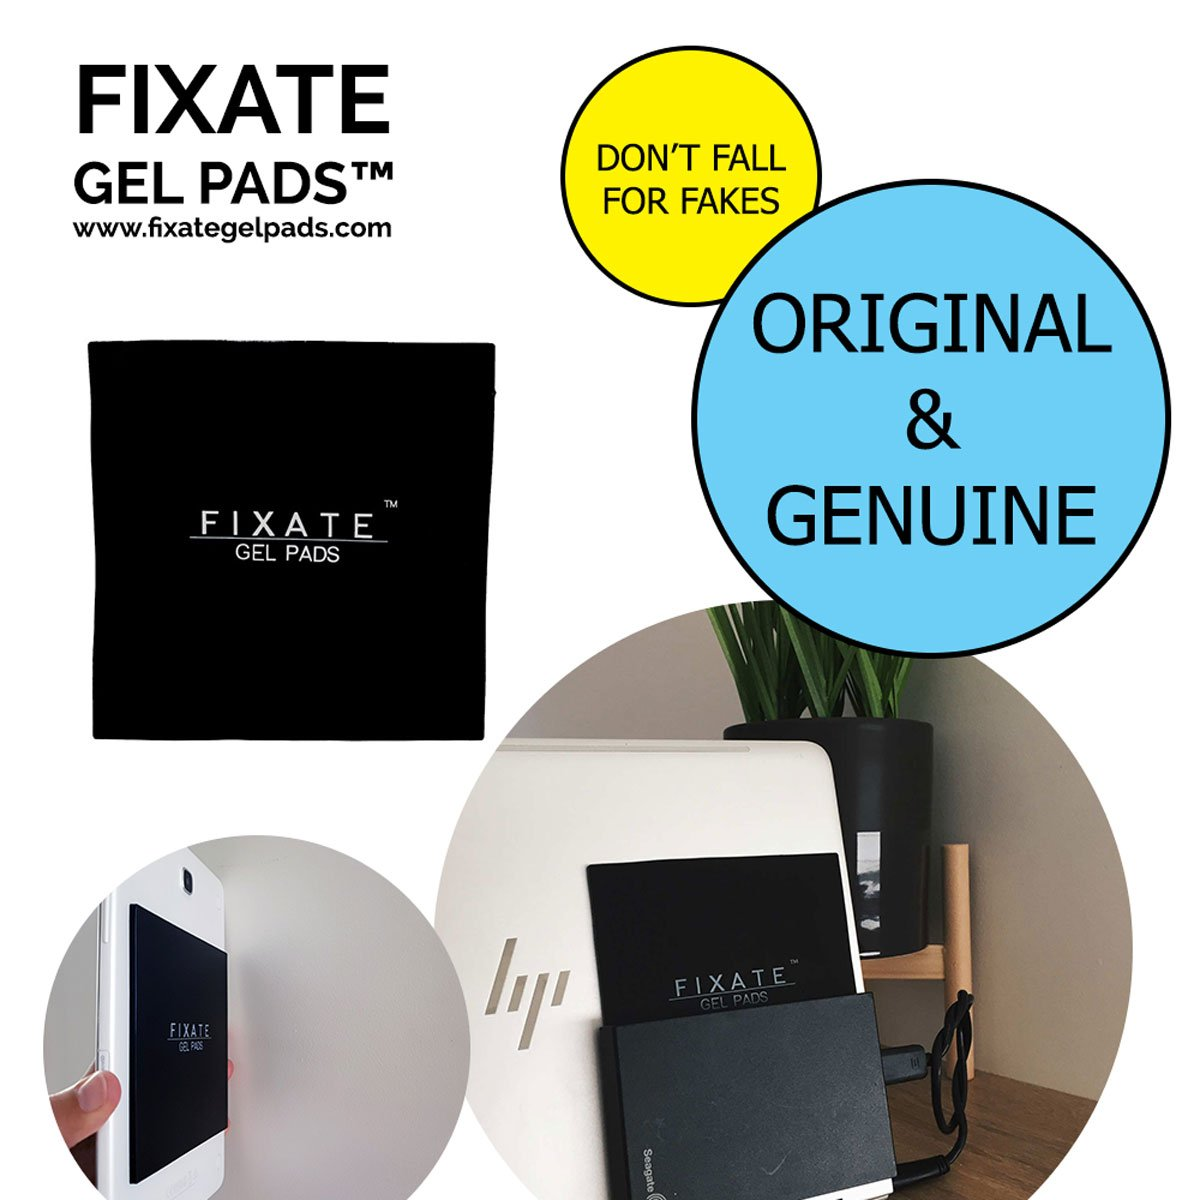 Fixate Gel Pads Large Square : Official -DON'T BE FOOLED BY IMITATIONS